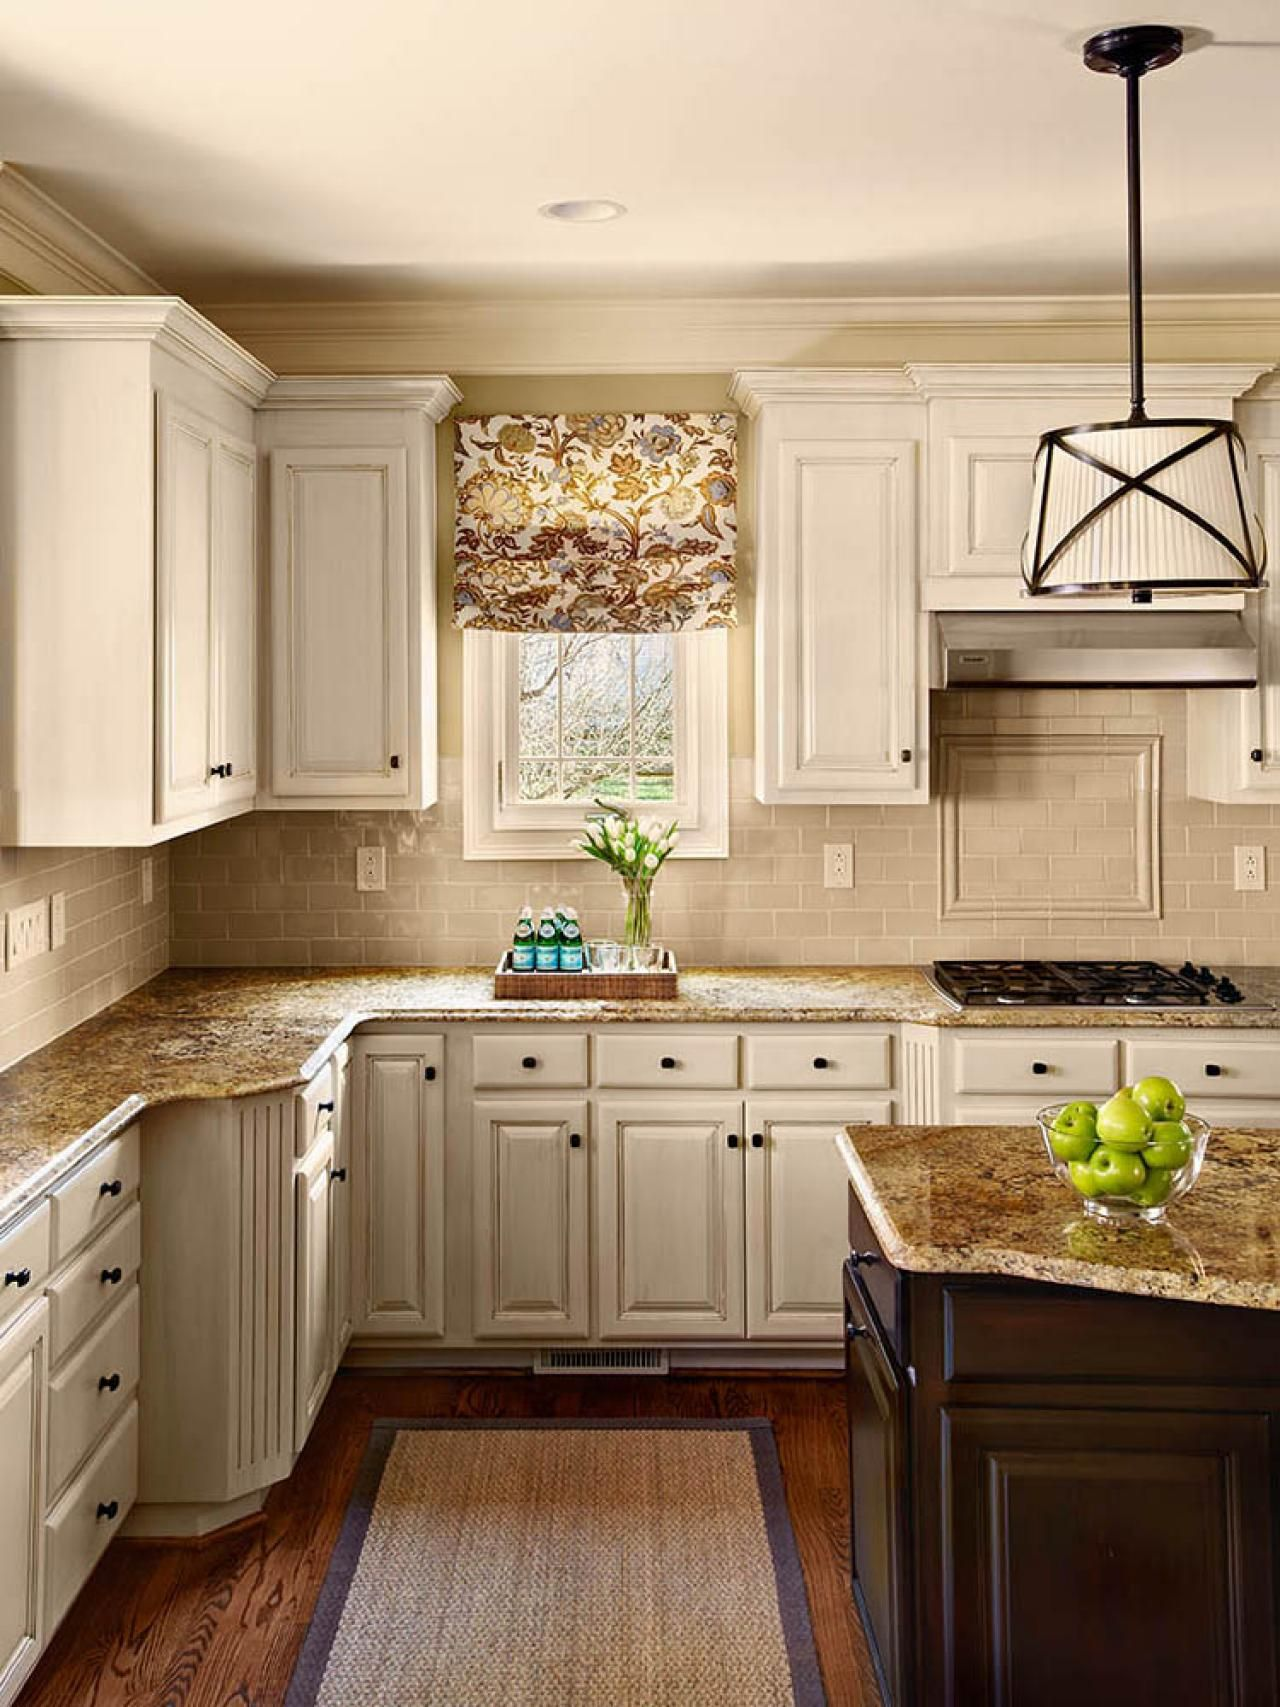 of Kitchen Cabinets Ideas & Inspiration From